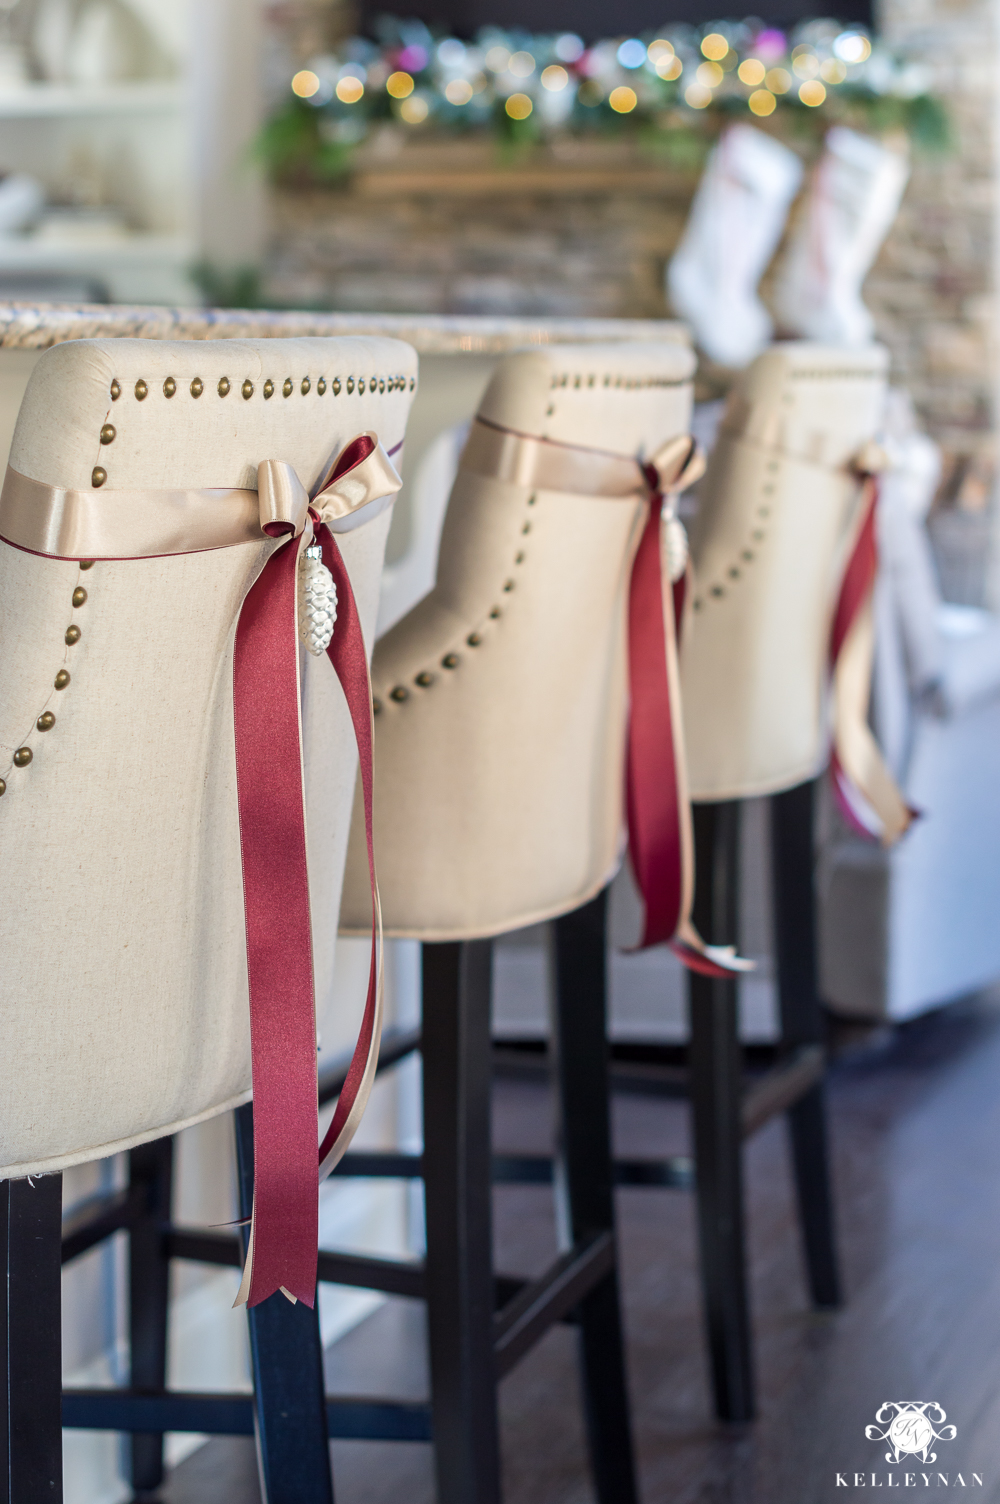 Bar stools with ribbon and an ornament for Christmas